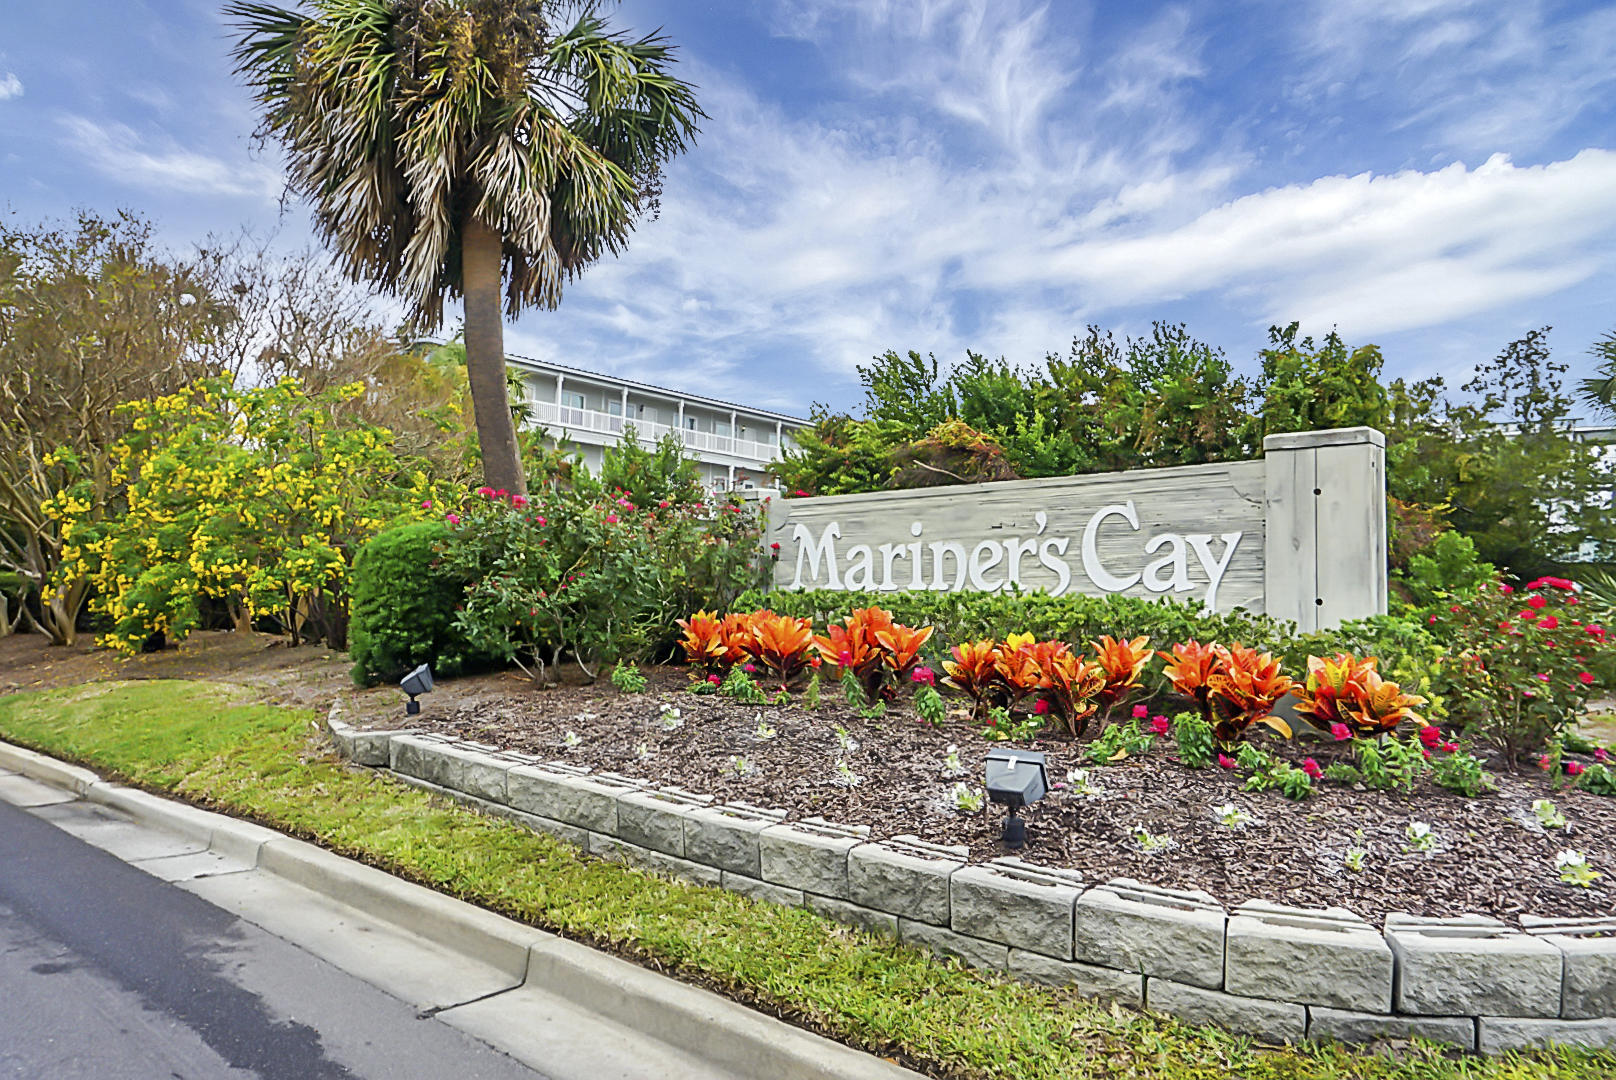 Mariners Cay Homes For Sale - 45 Mariners Cay, Folly Beach, SC - 62